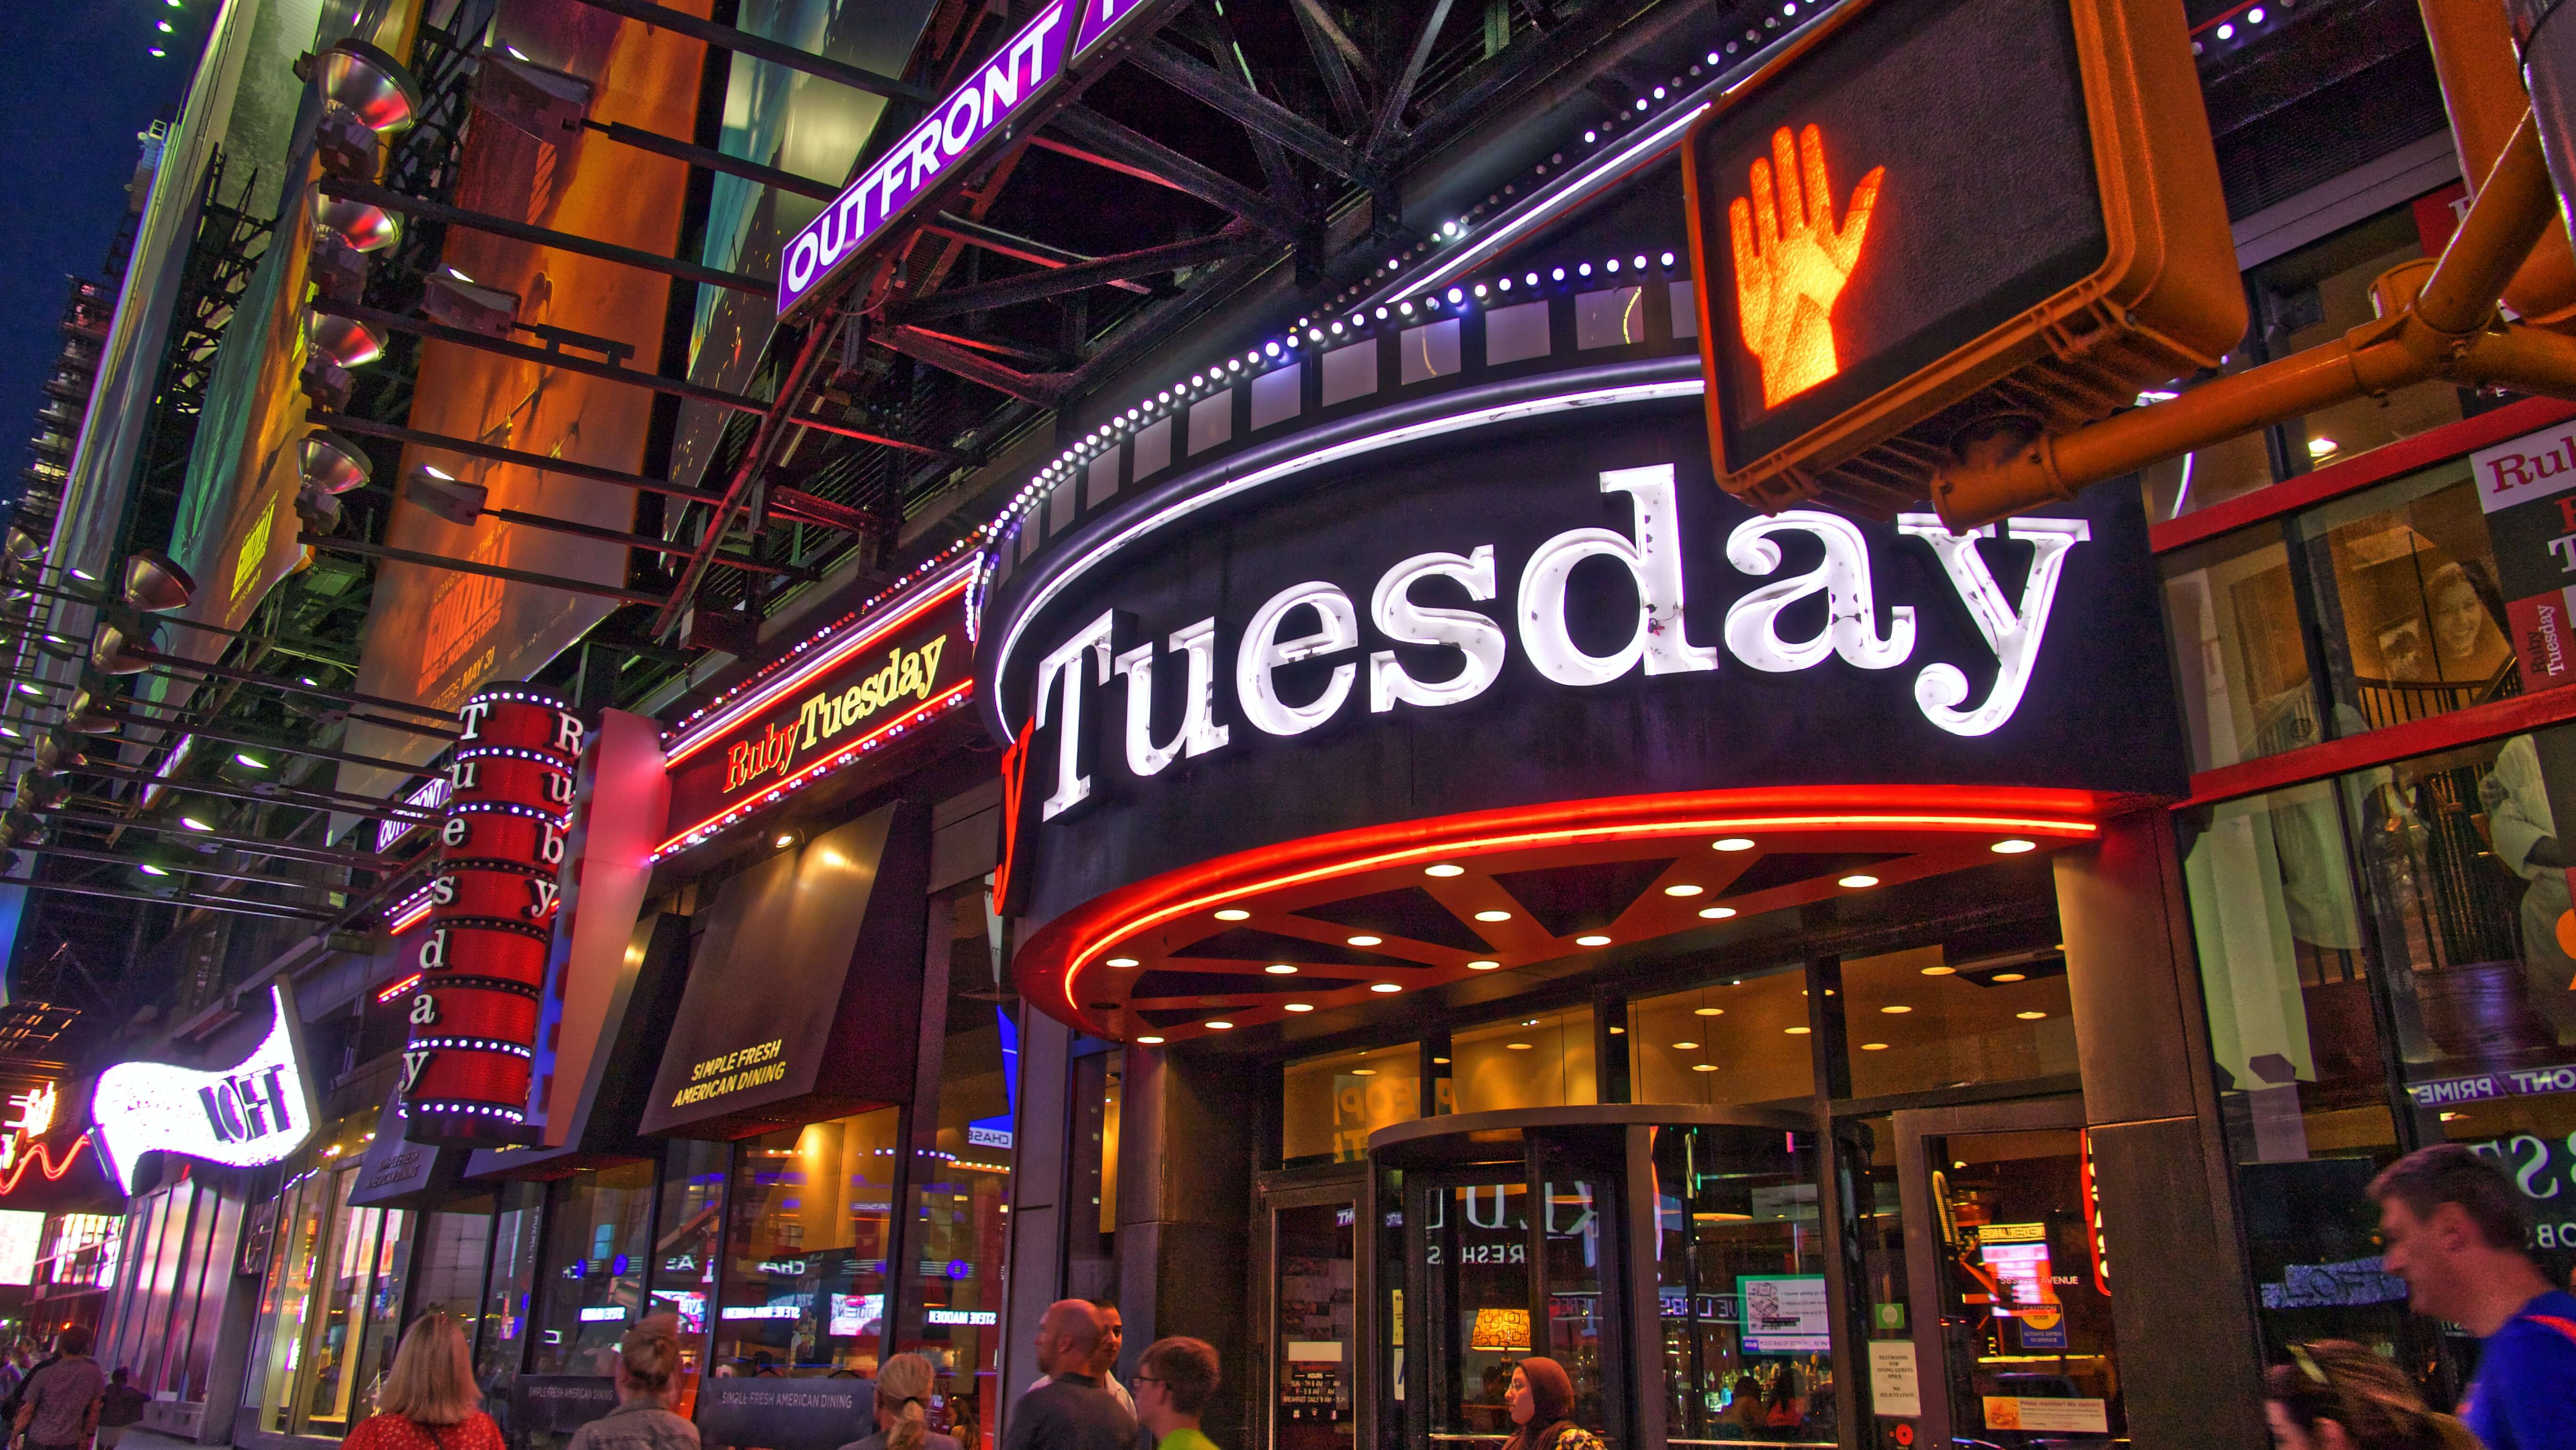 10 things you can do on a Tuesday night in Atlanta, Georgia